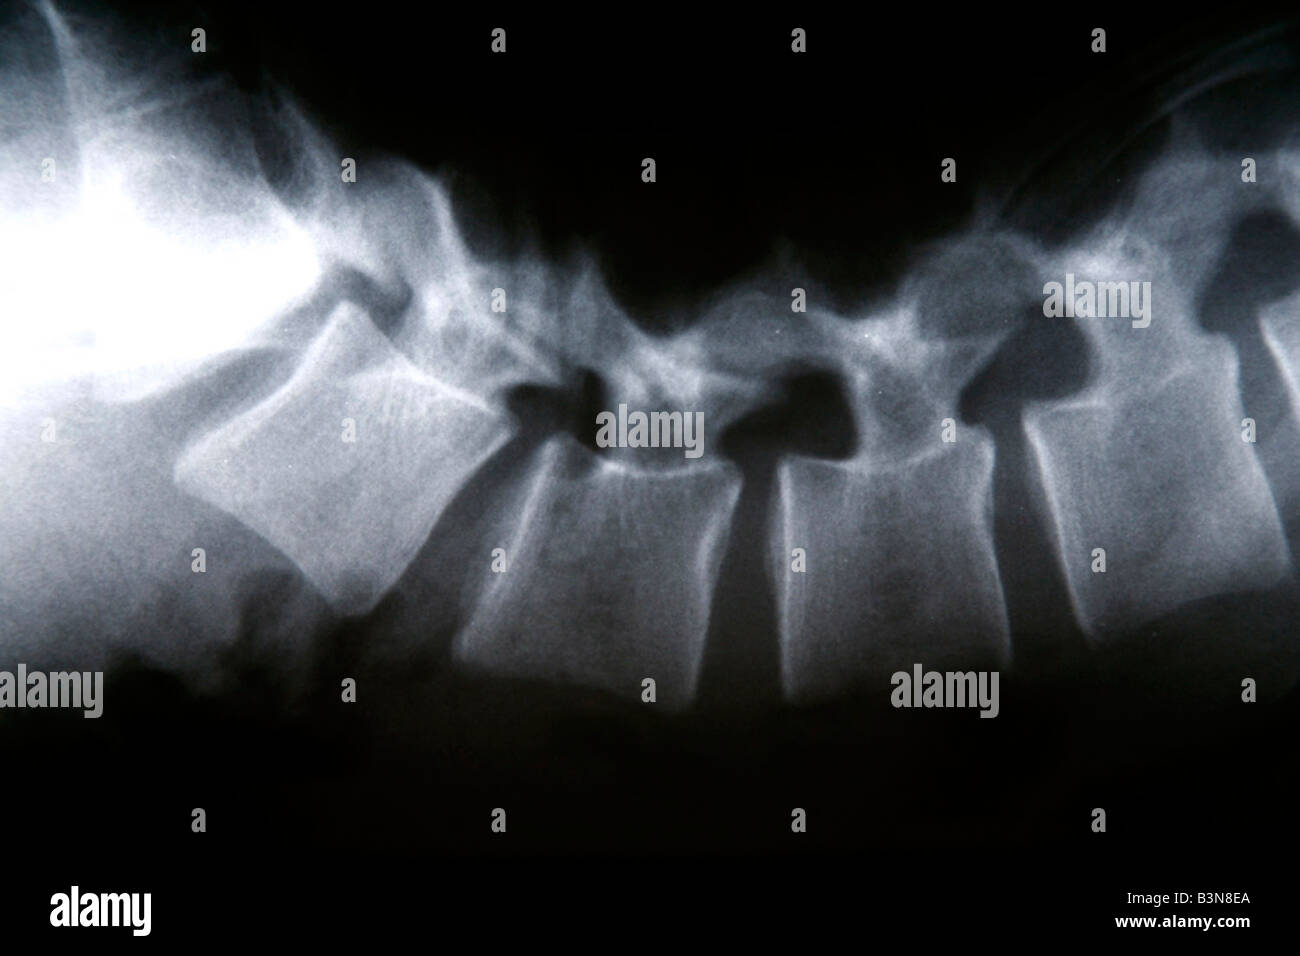 X-ray, close-up - Stock Image